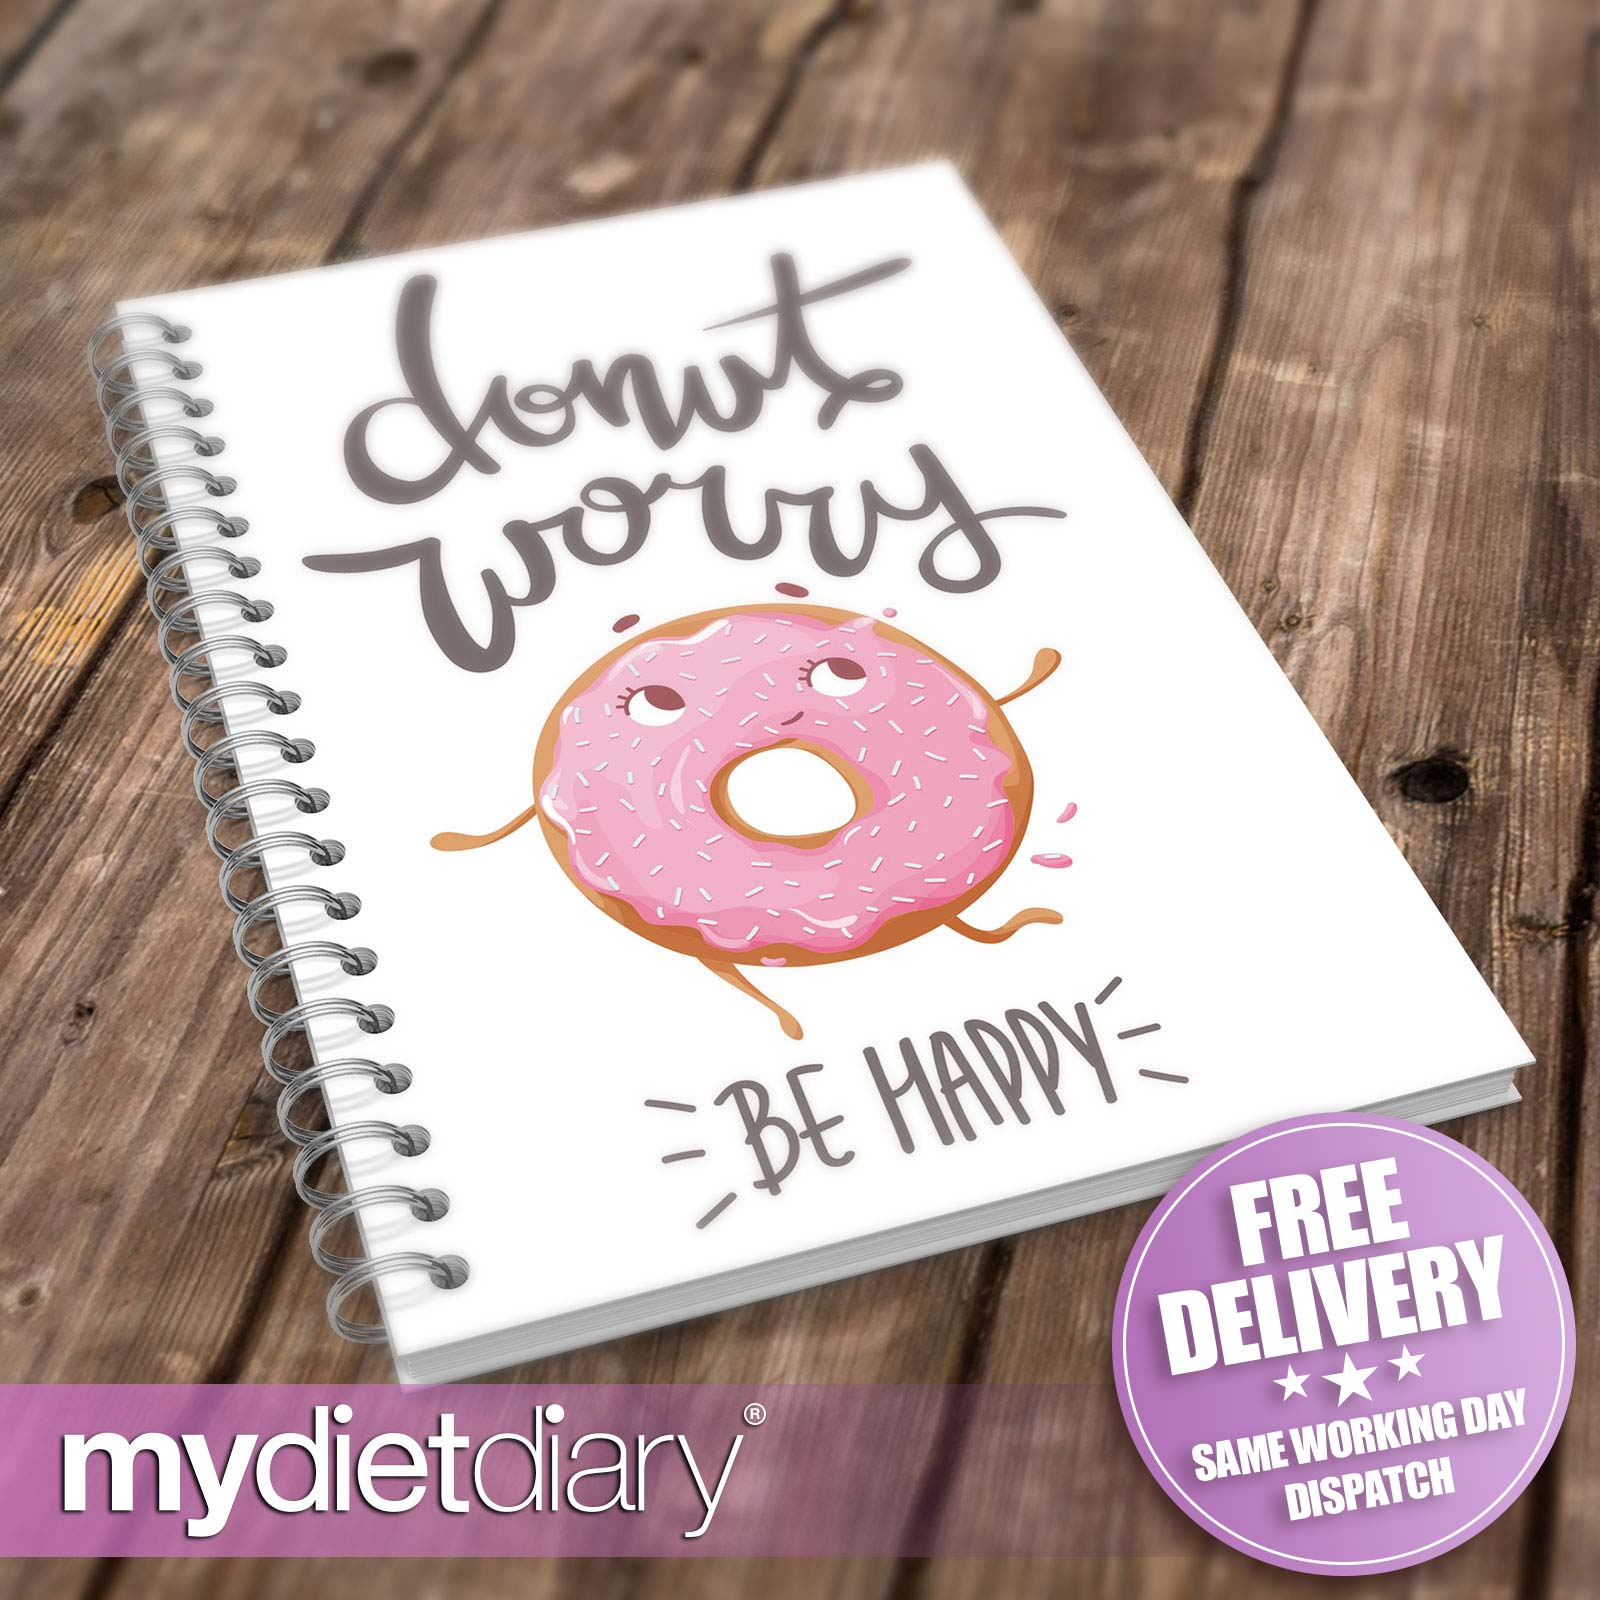 DIET-DIARY-SLIMMING-WORLD-COMPATIBLE-Food-Diary-Weight-Loss-Journal-Tracker-12wk